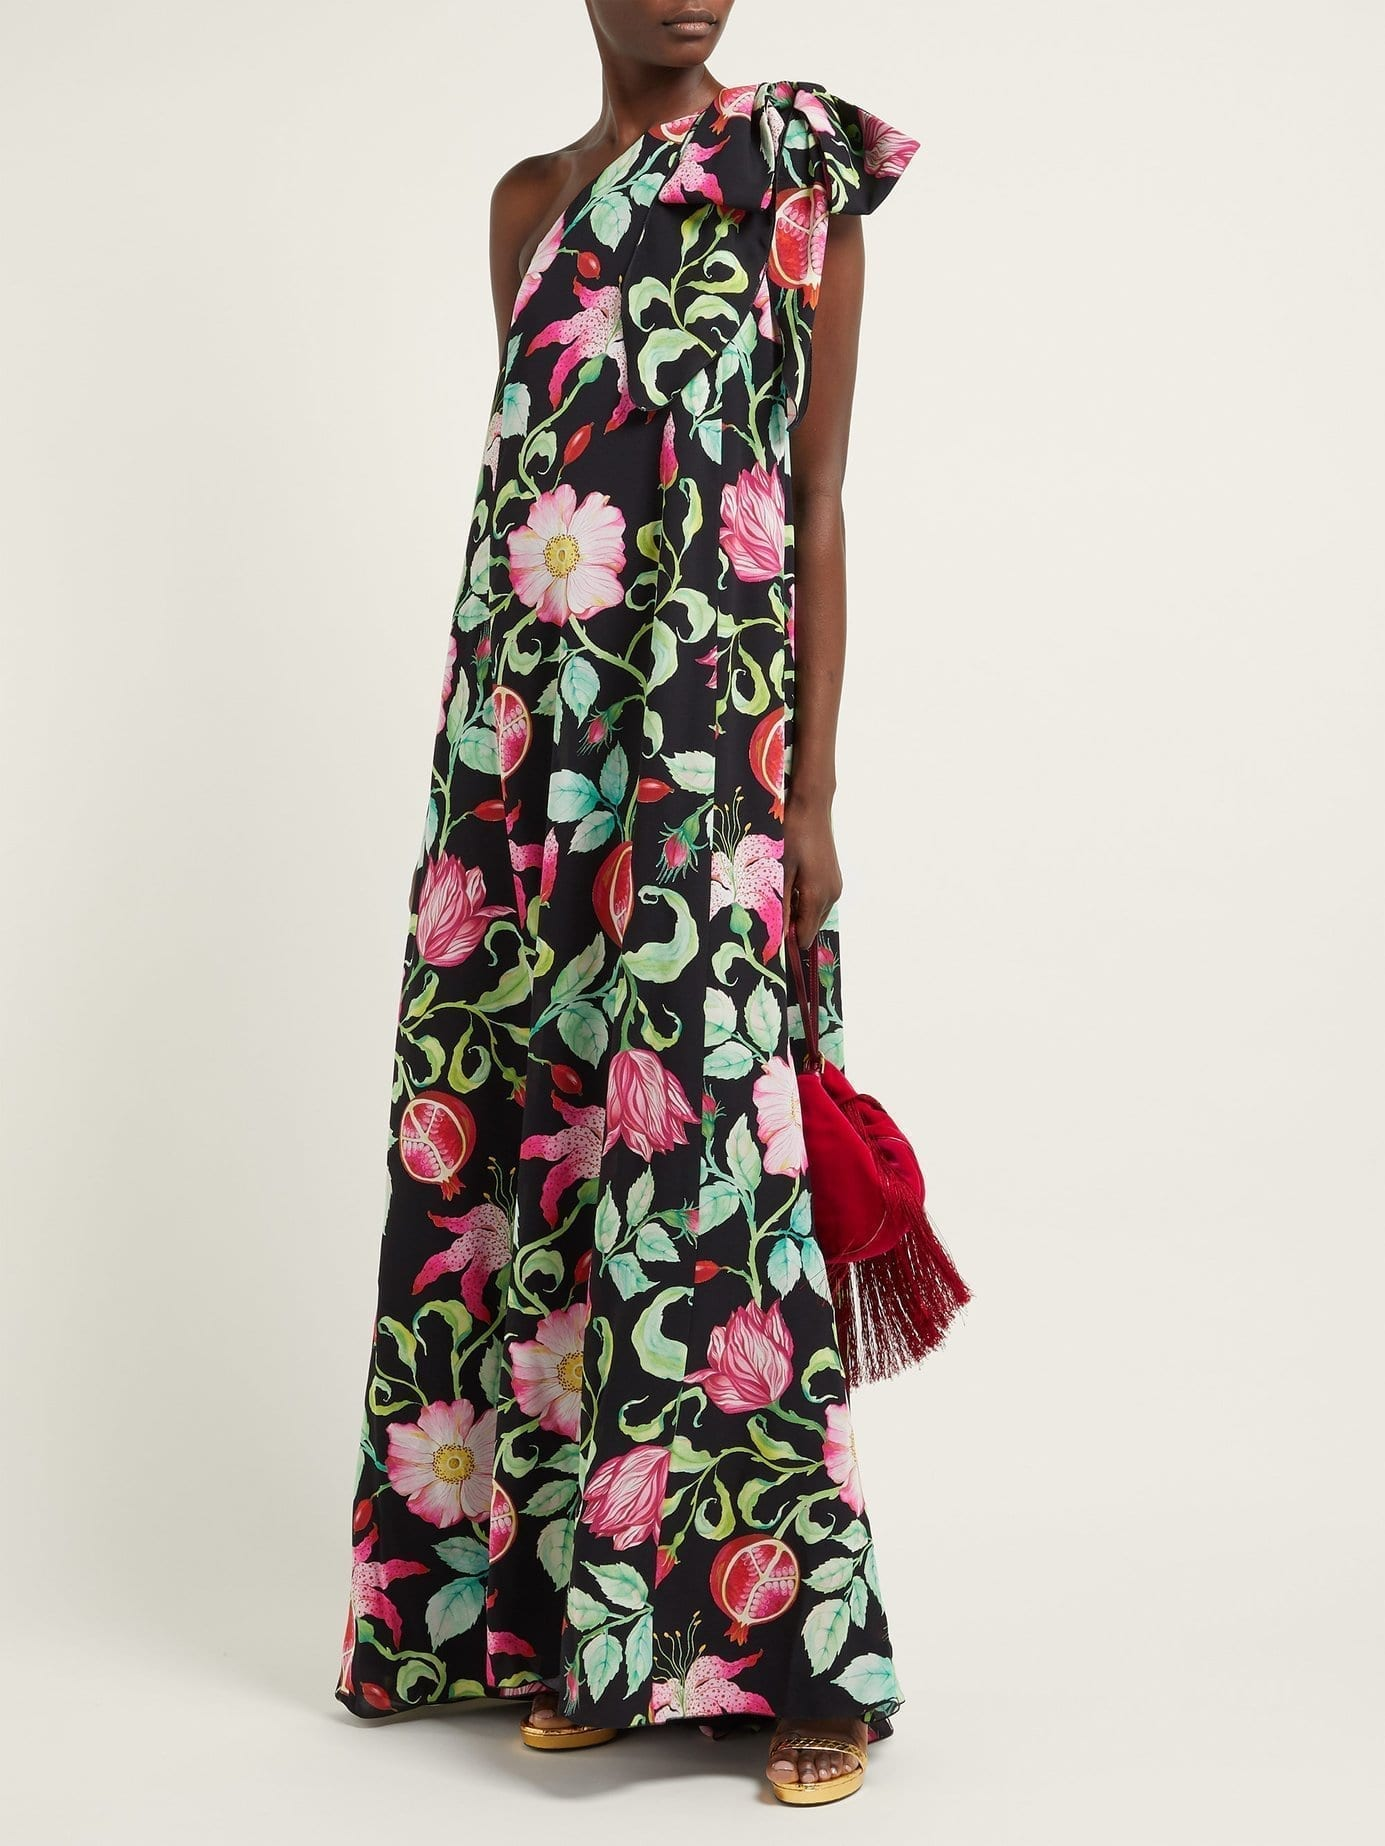 ANDREW GN Pomegrante Asymmetric Silk Black / Floral Printed Gown